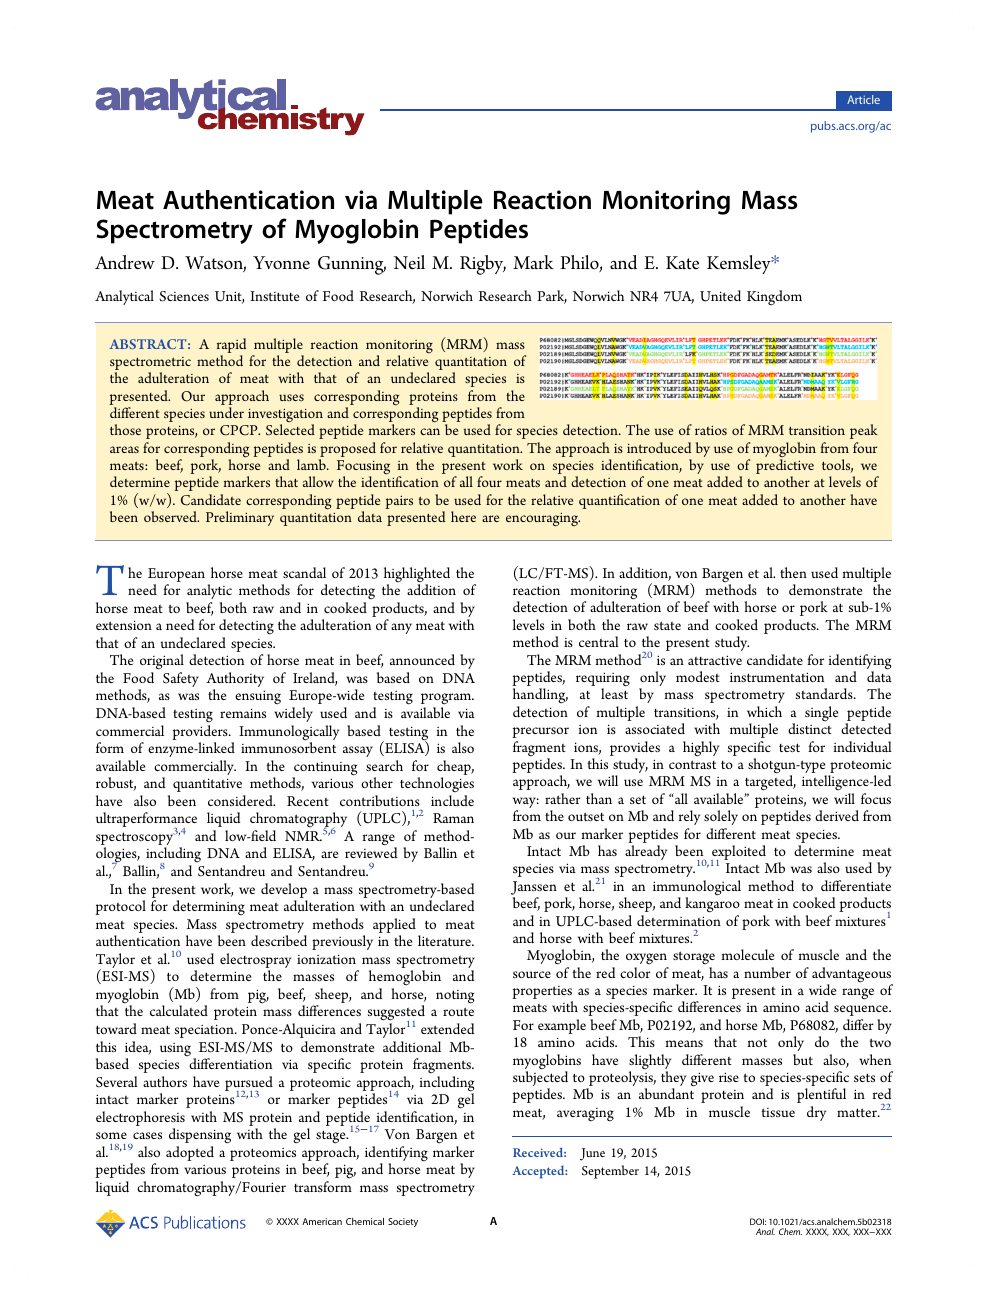 Meat Authentication via Multiple Reaction Monitoring Mass